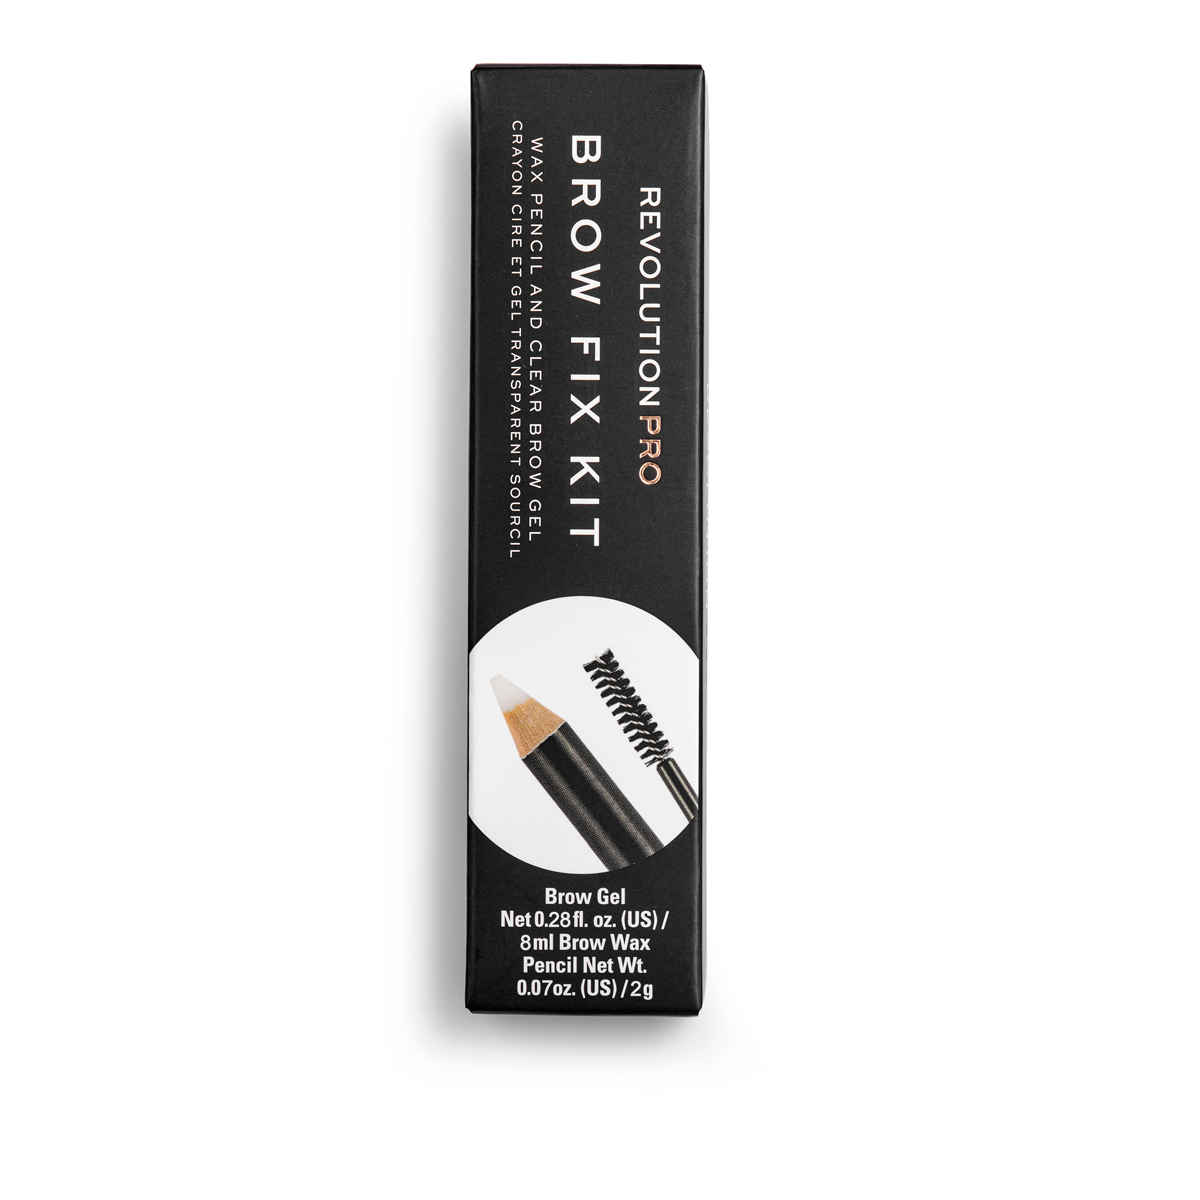 Revolution PRO Brow Brow Fix Kit - Brow Gel & Wax Pencil